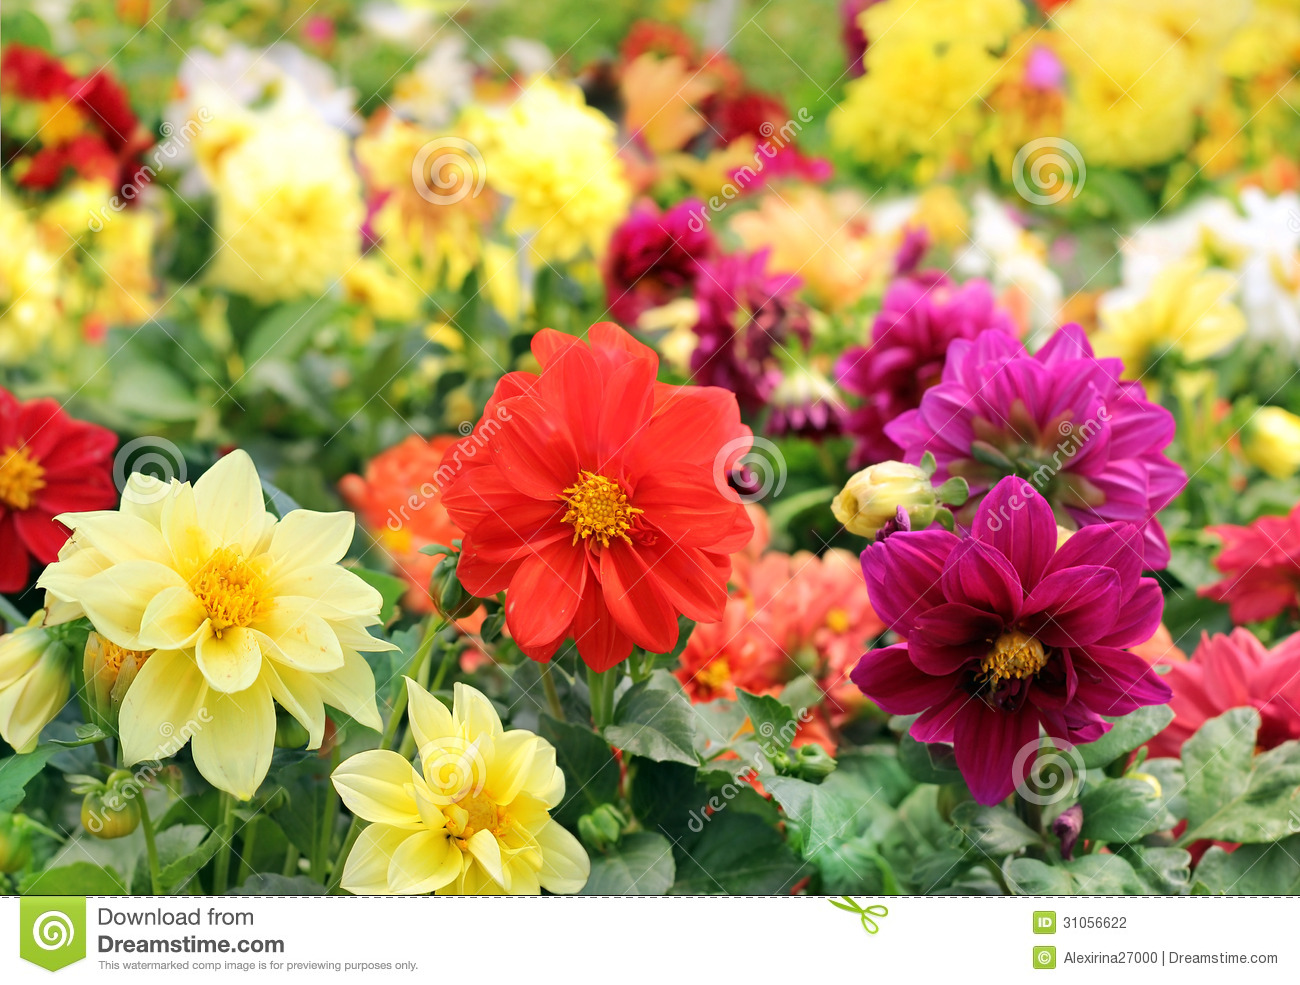 Bright Different Colored Flowers Of Dahlia Stock Photo - Image of ...